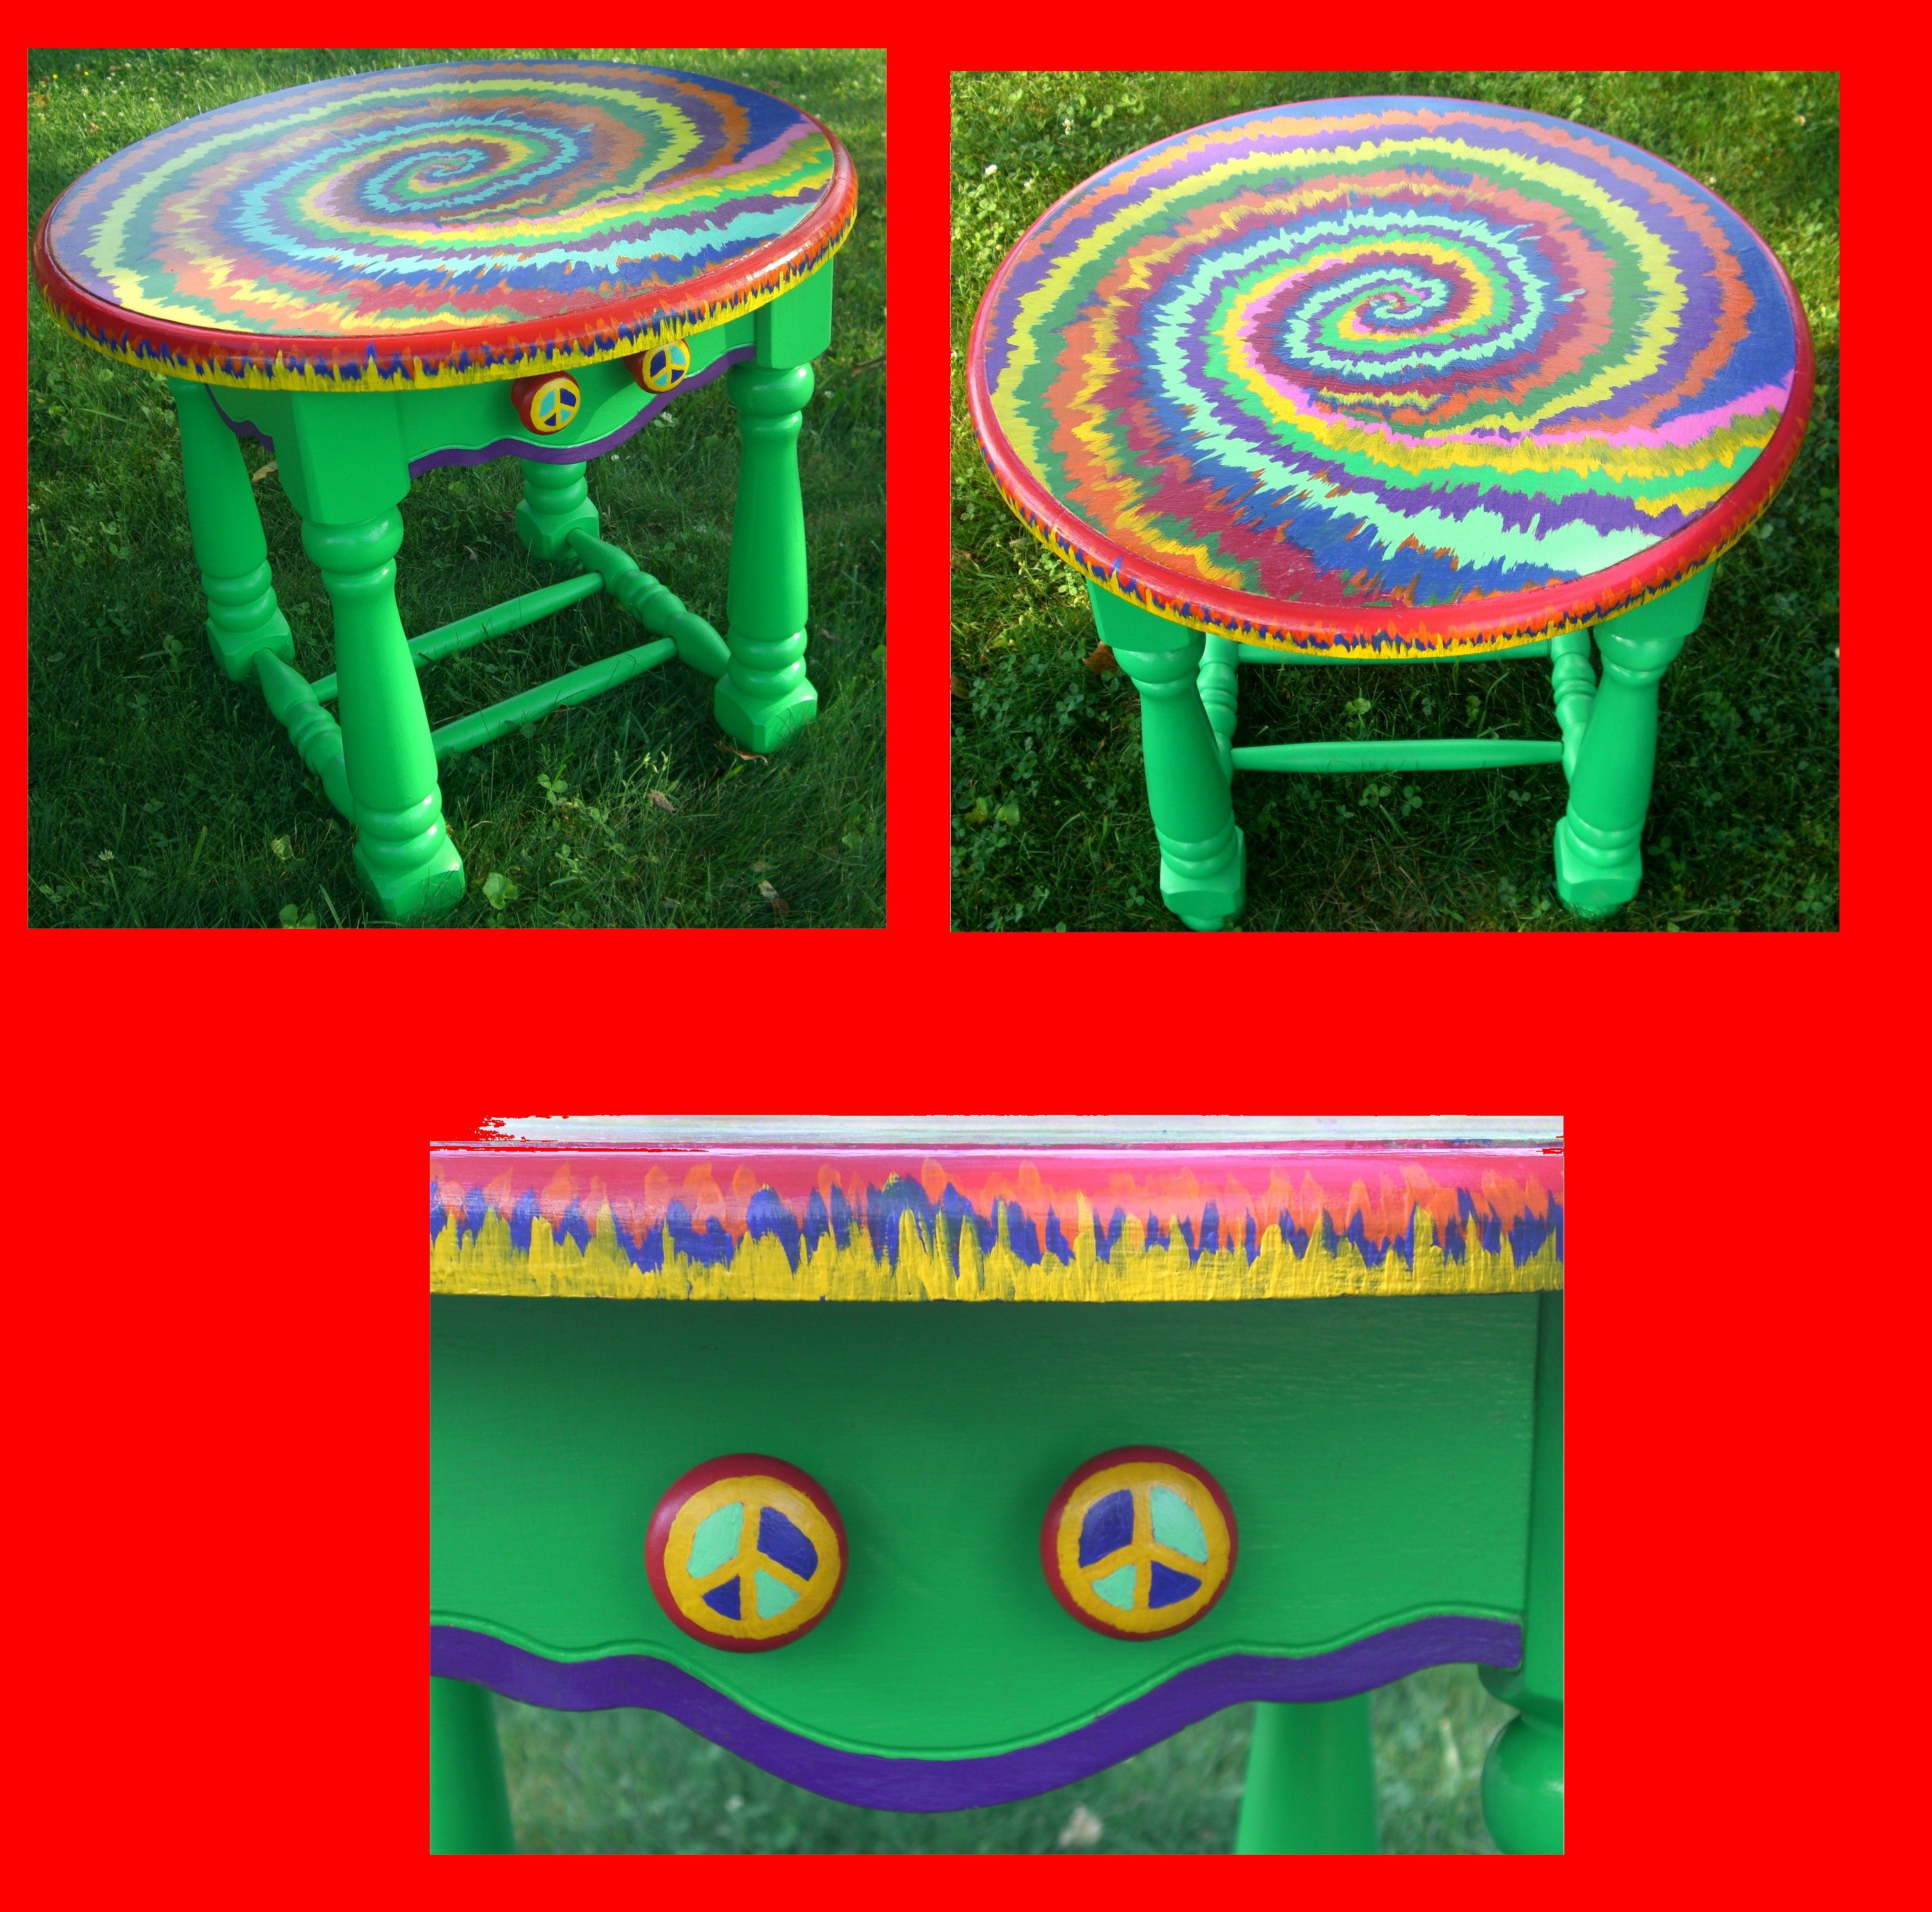 Radiant Hand Painted Side Table Night Stand Or End Vibrantly Colored Tie Hand Painted Side Table Night Stand Or End Vibrantly Colored Ark Wiki Dye Table